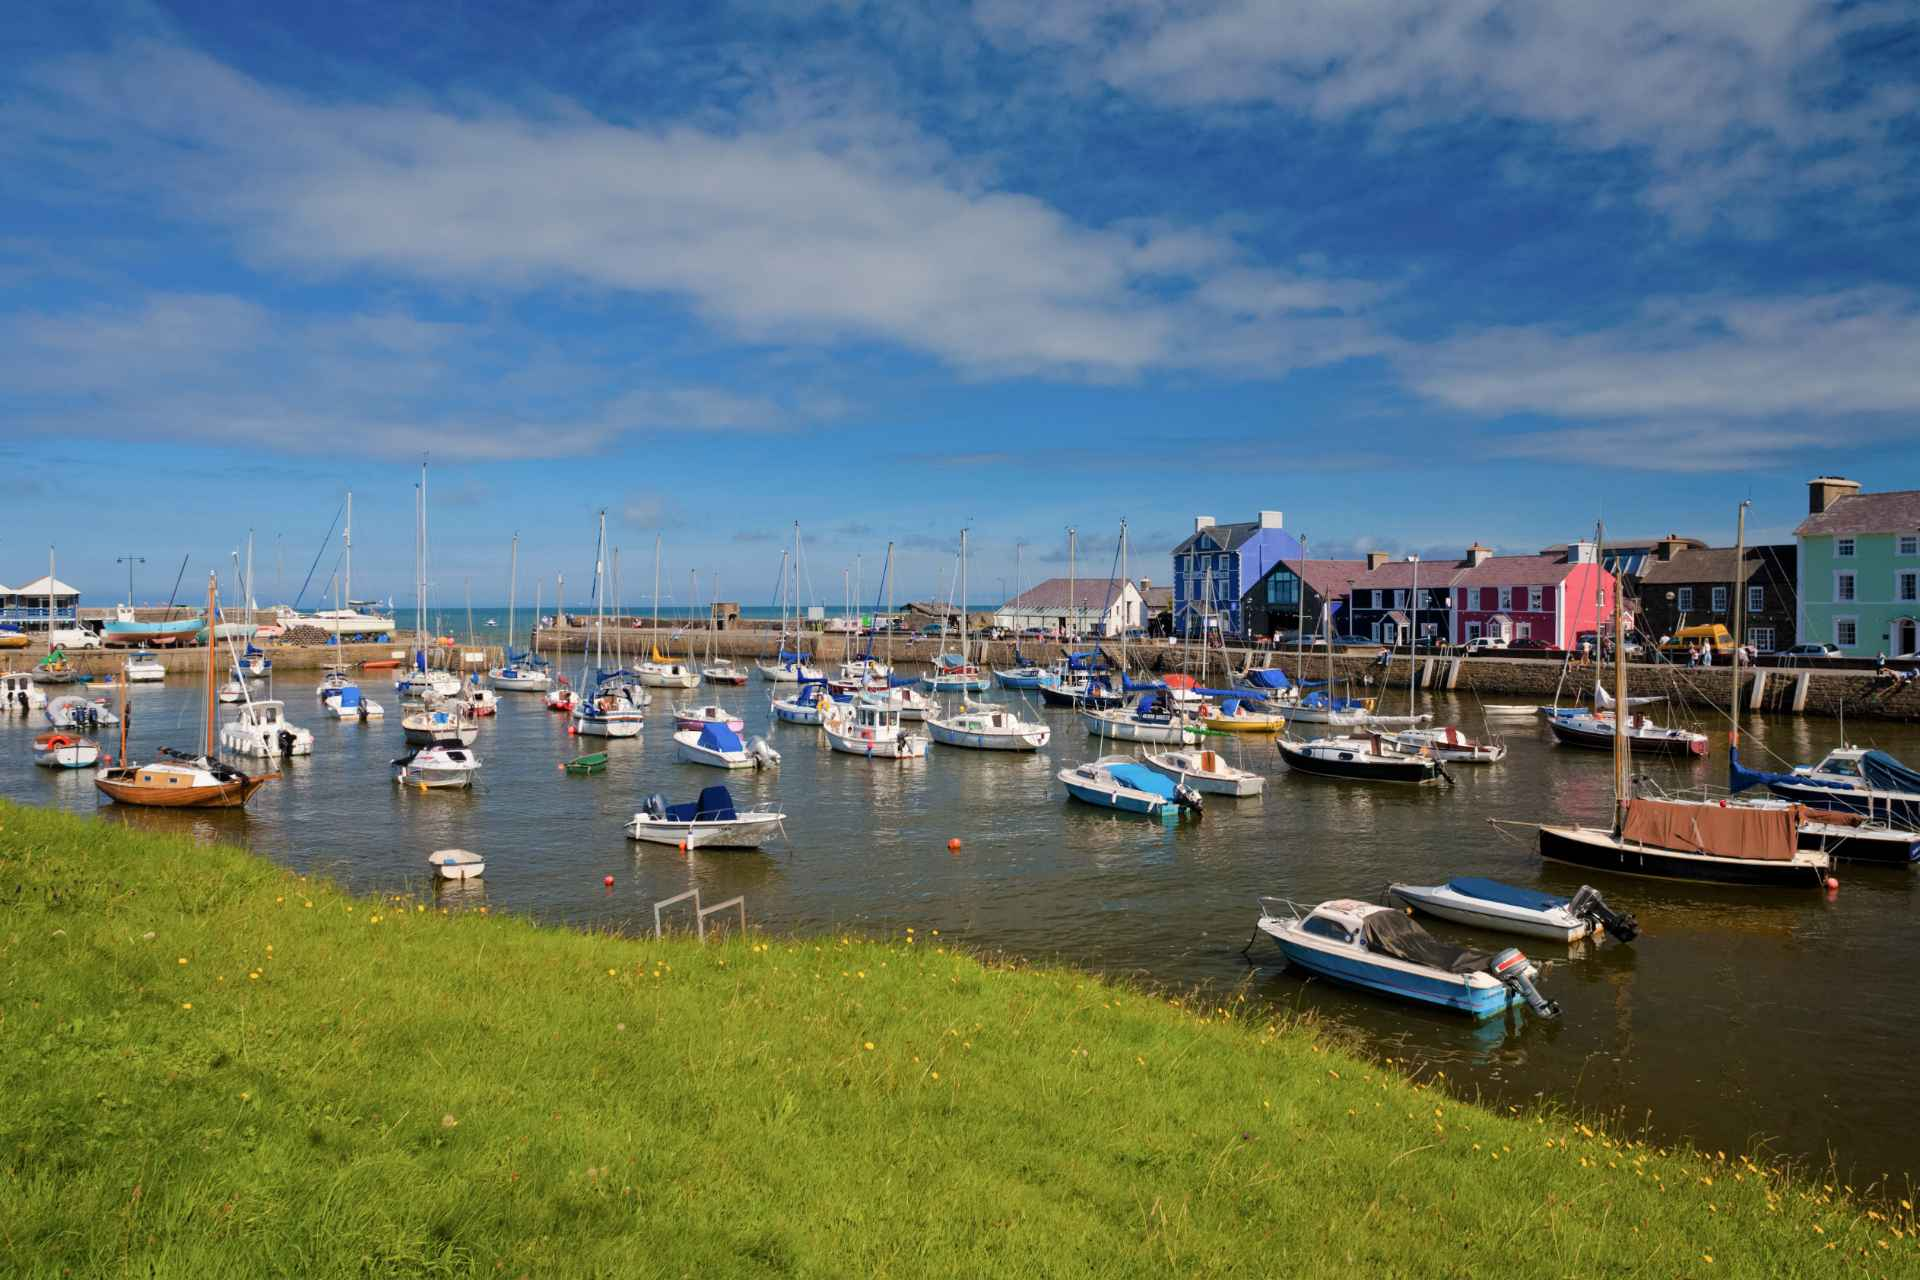 colourful-aberaeron-harbour-and-boats-in-cardigan-bay